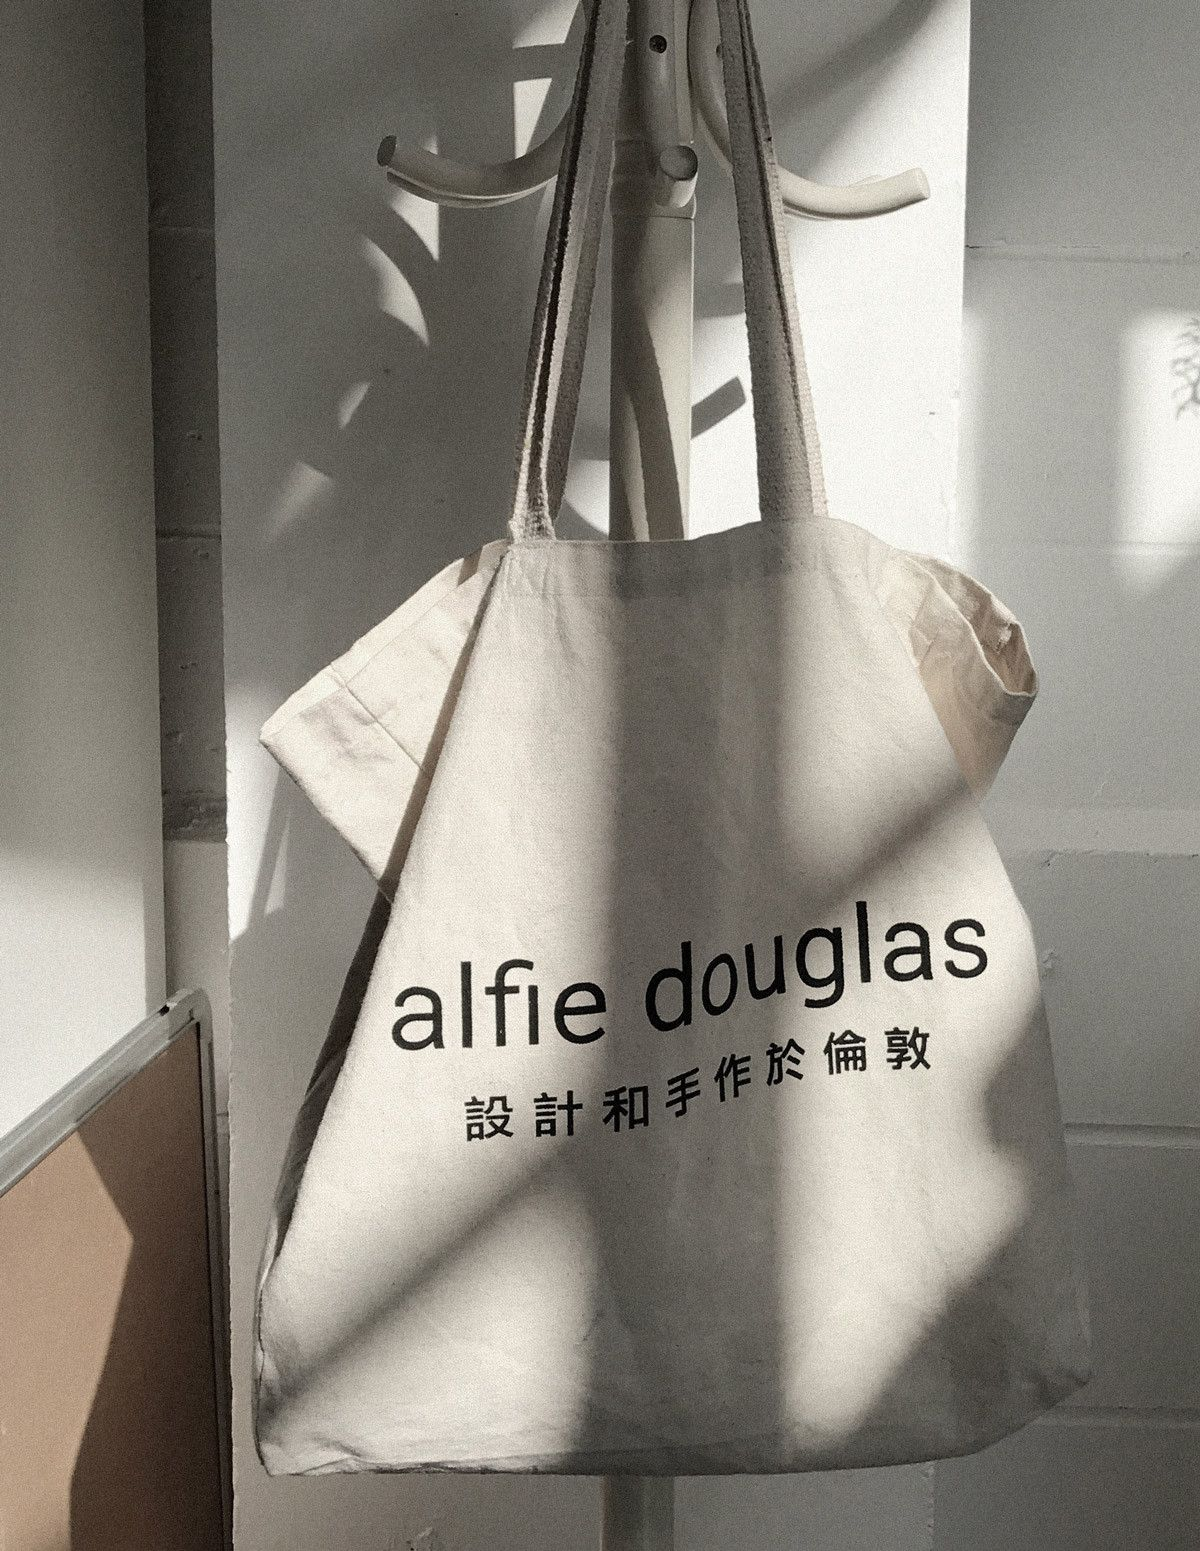 New Tote Bag By Alfie Douglas Uk Makers Of Minimal Handmade Leather Bags From London